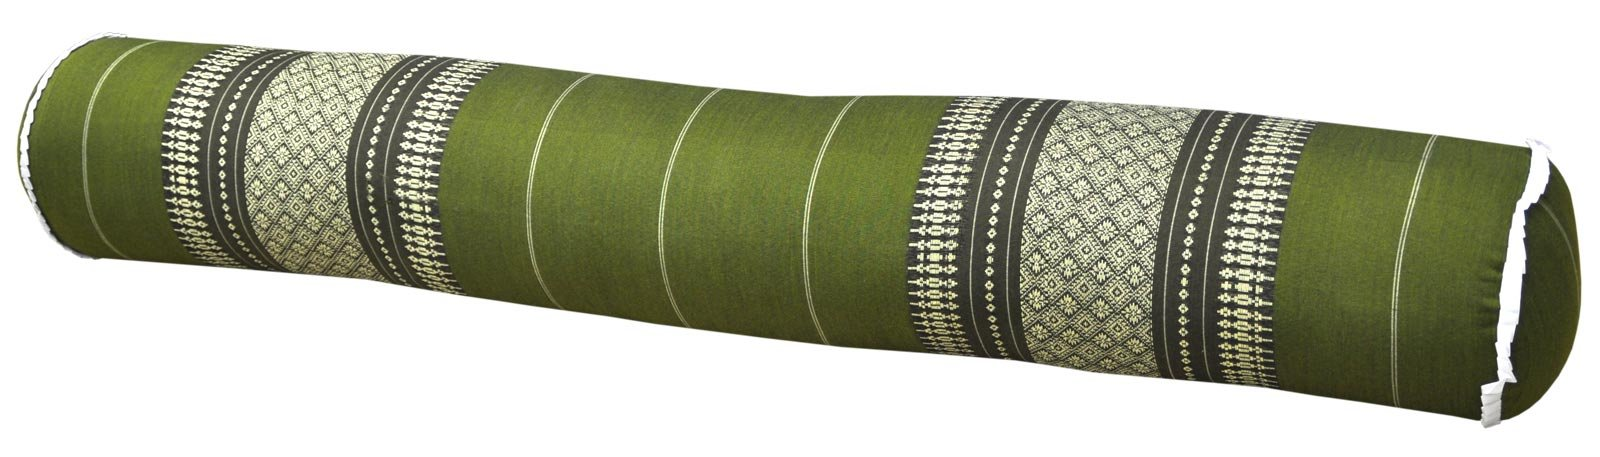 Thai cushion round bolster, pillow, sofa, imported from Thaïland, green, relaxation, beach, pool, meditation garden (81812) by Wilai GmbH